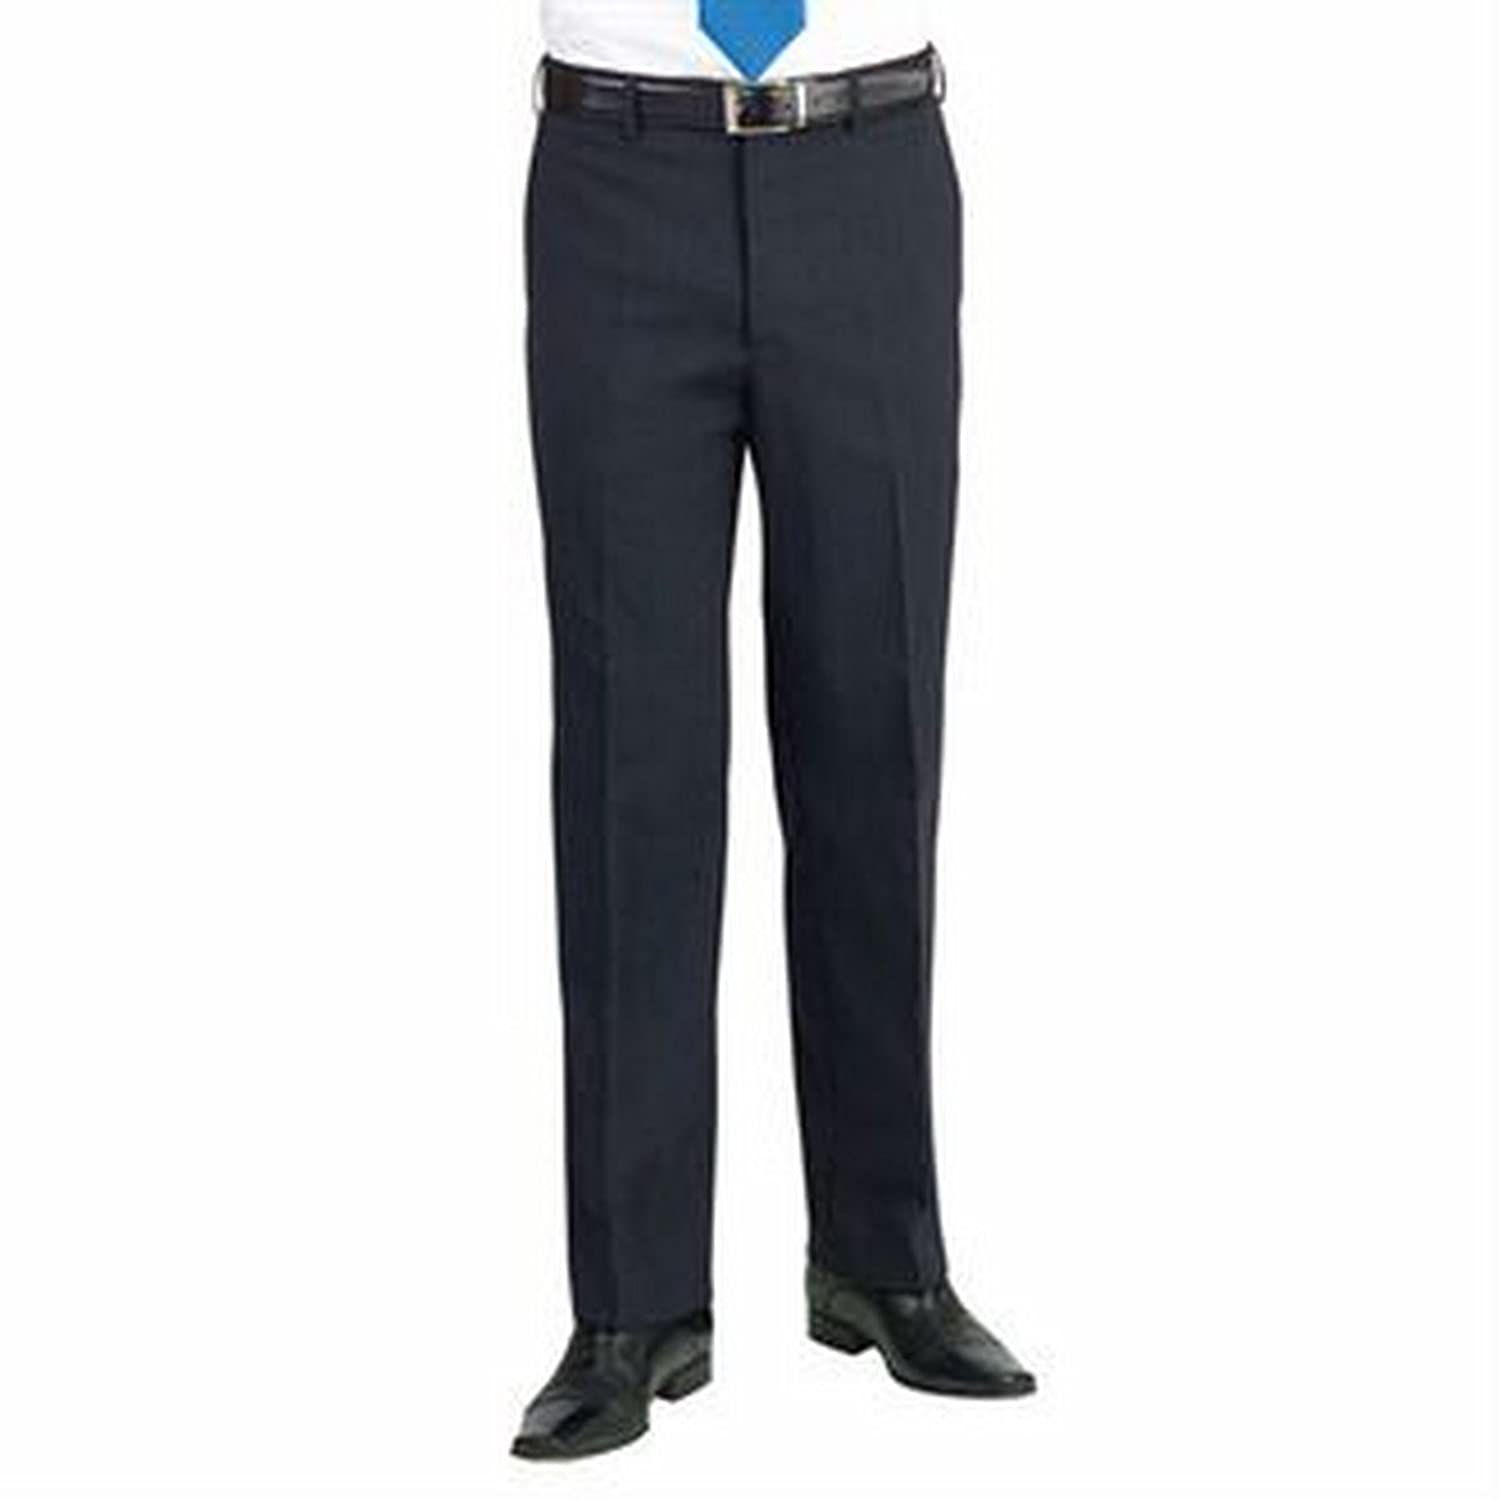 Apollo flat front trousers